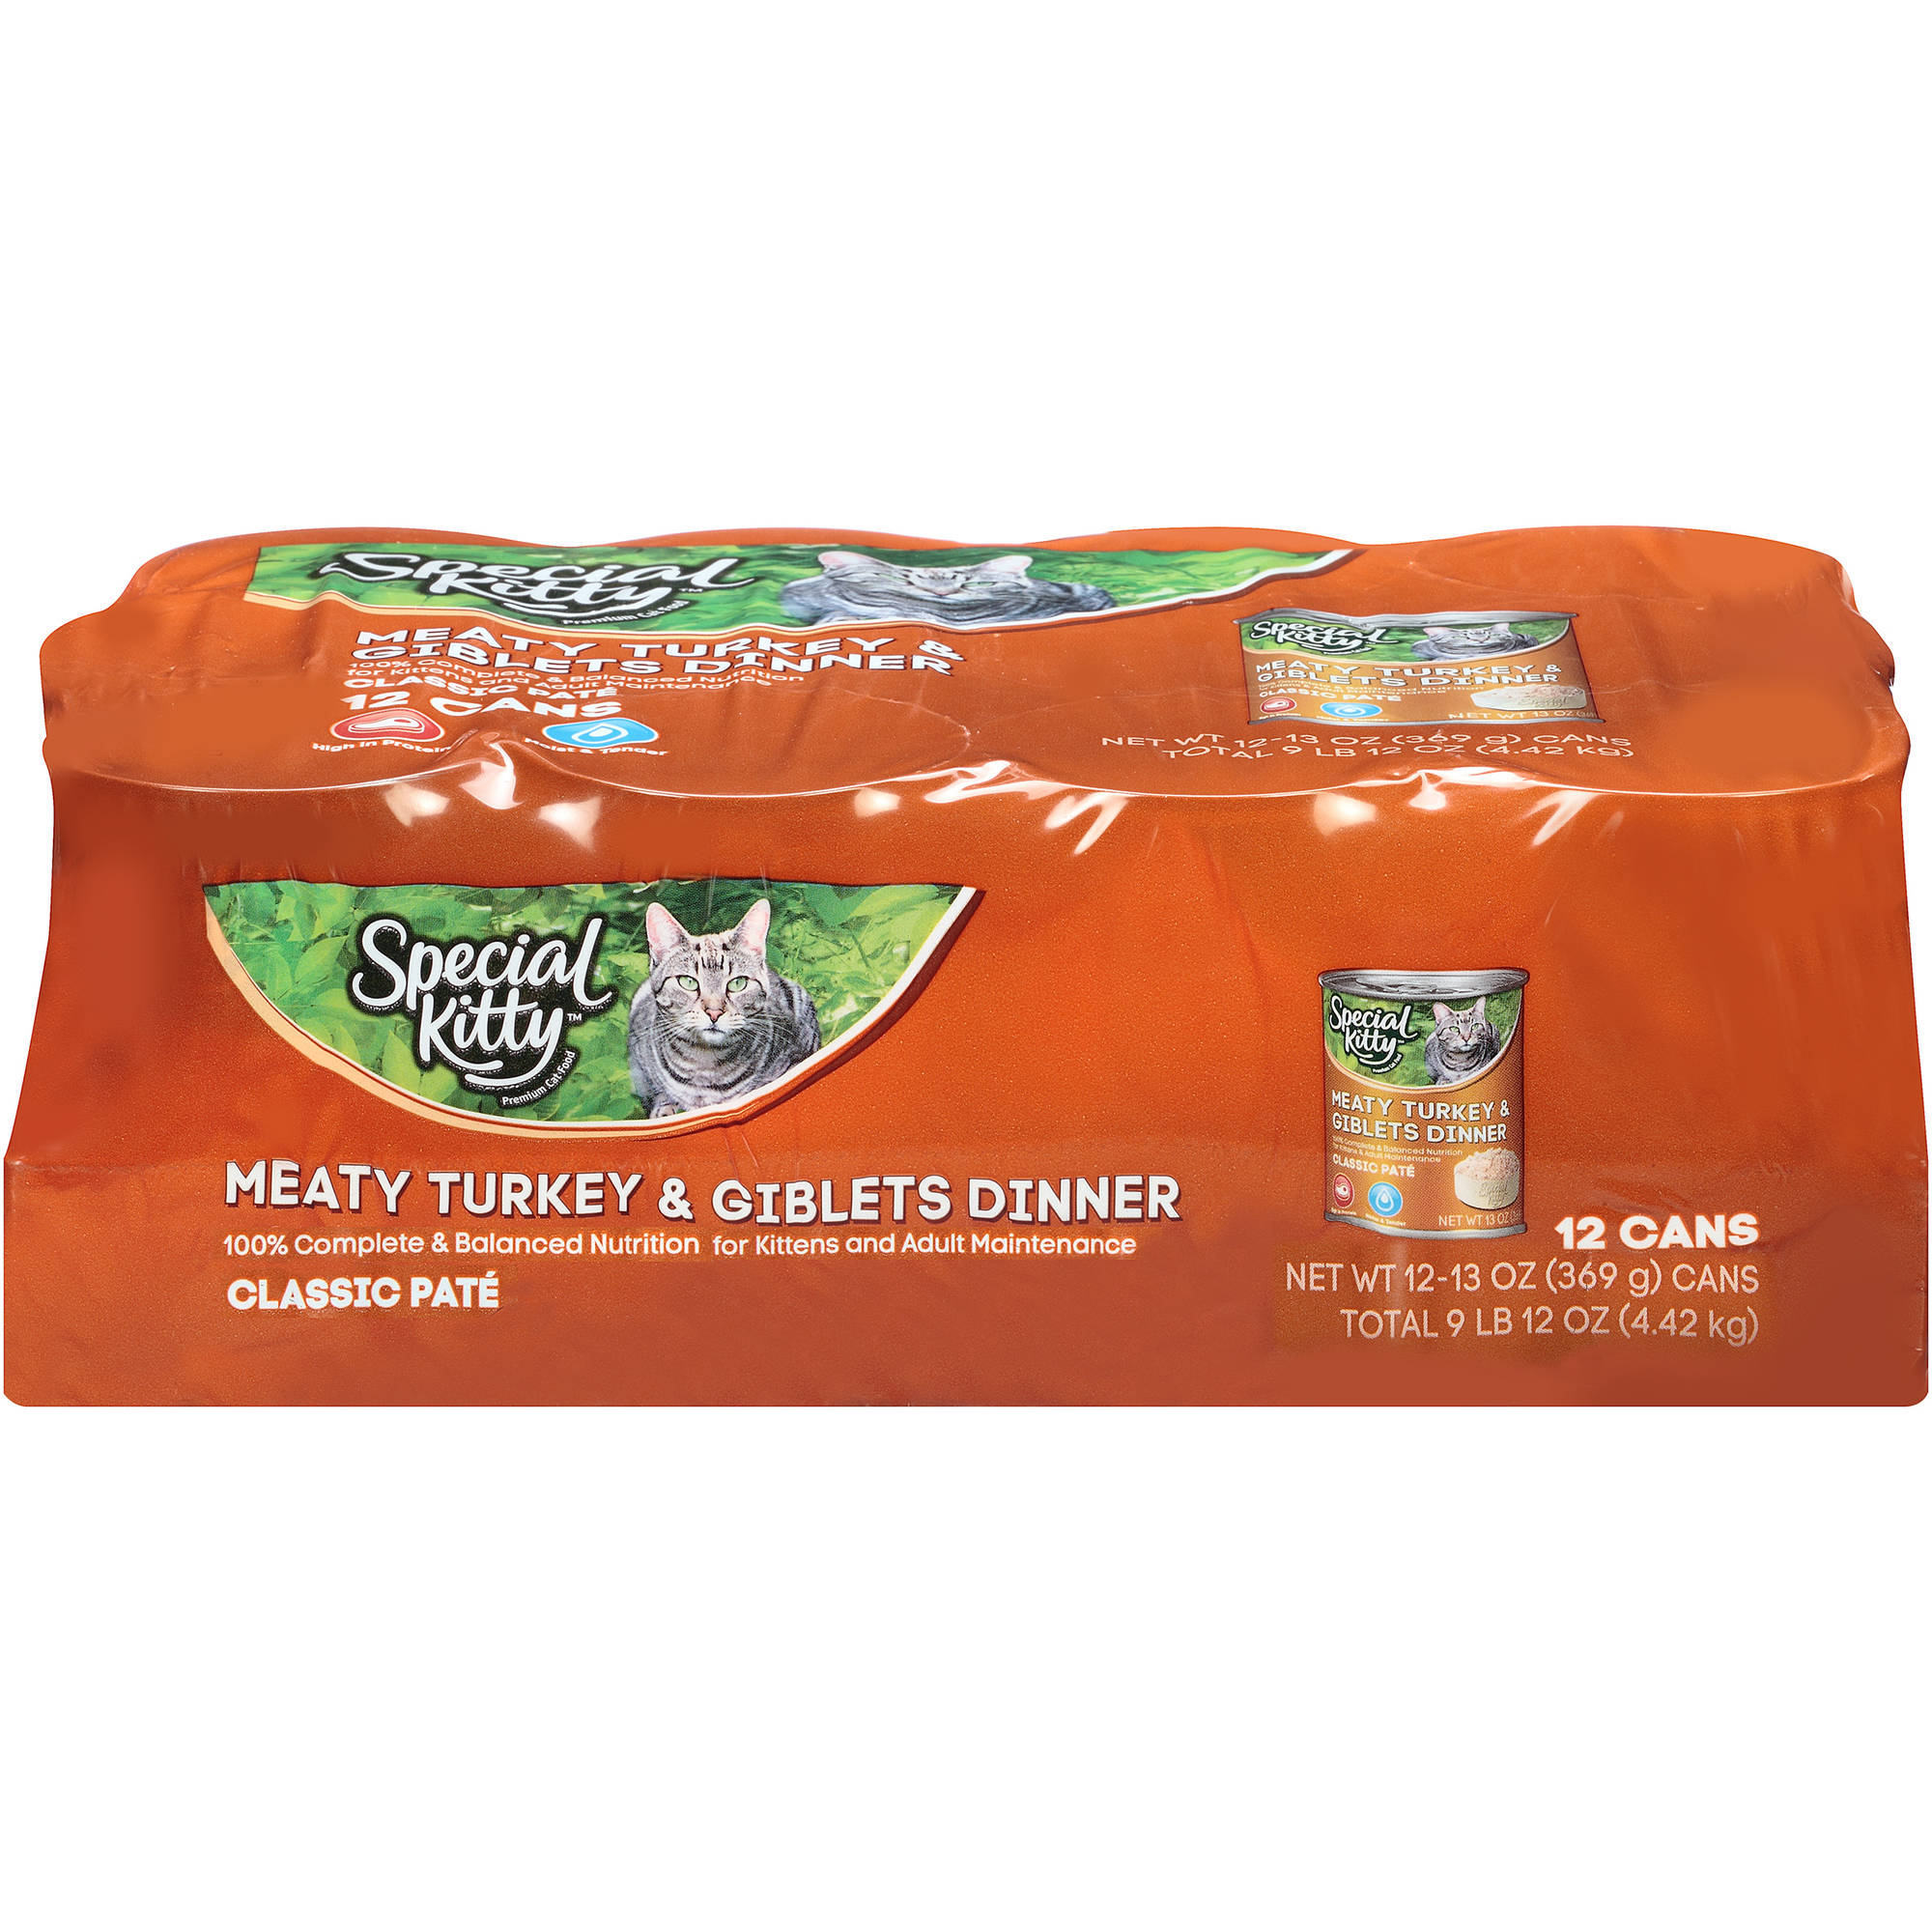 Special Kitty Meaty Turkey & Giblets Dinner Wet Cat Food 12-13 oz. Cans